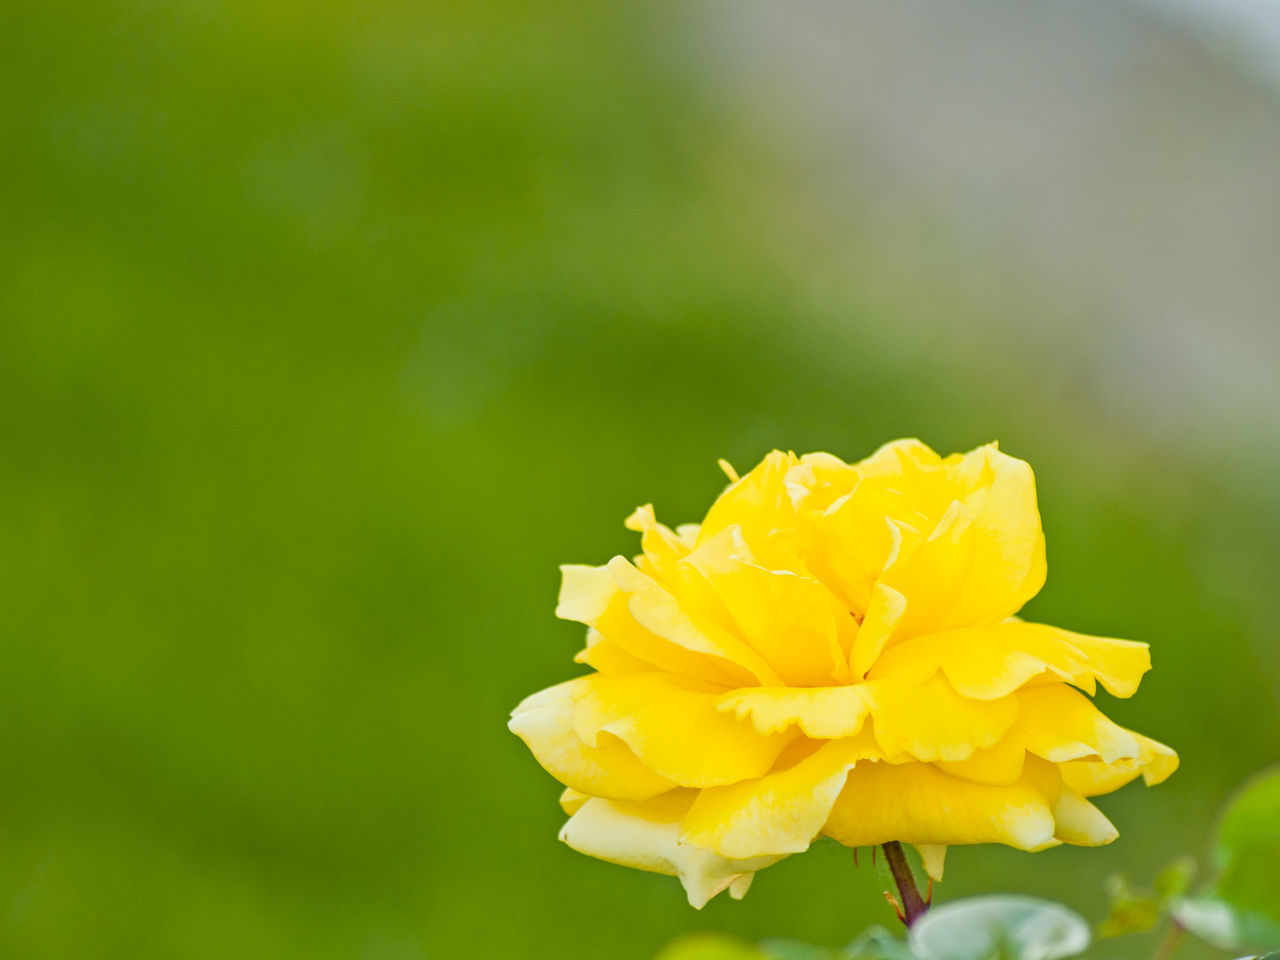 Backdrop Background Backgrounds Beauty In Nature Card Close-up Copy Space Day Flower Flower Head Fragility Freshness Growth Nature No People Outdoors Petal Plant Rose - Flower Roses Space For Text Spring Springtime Wallpaper Yellow Rose